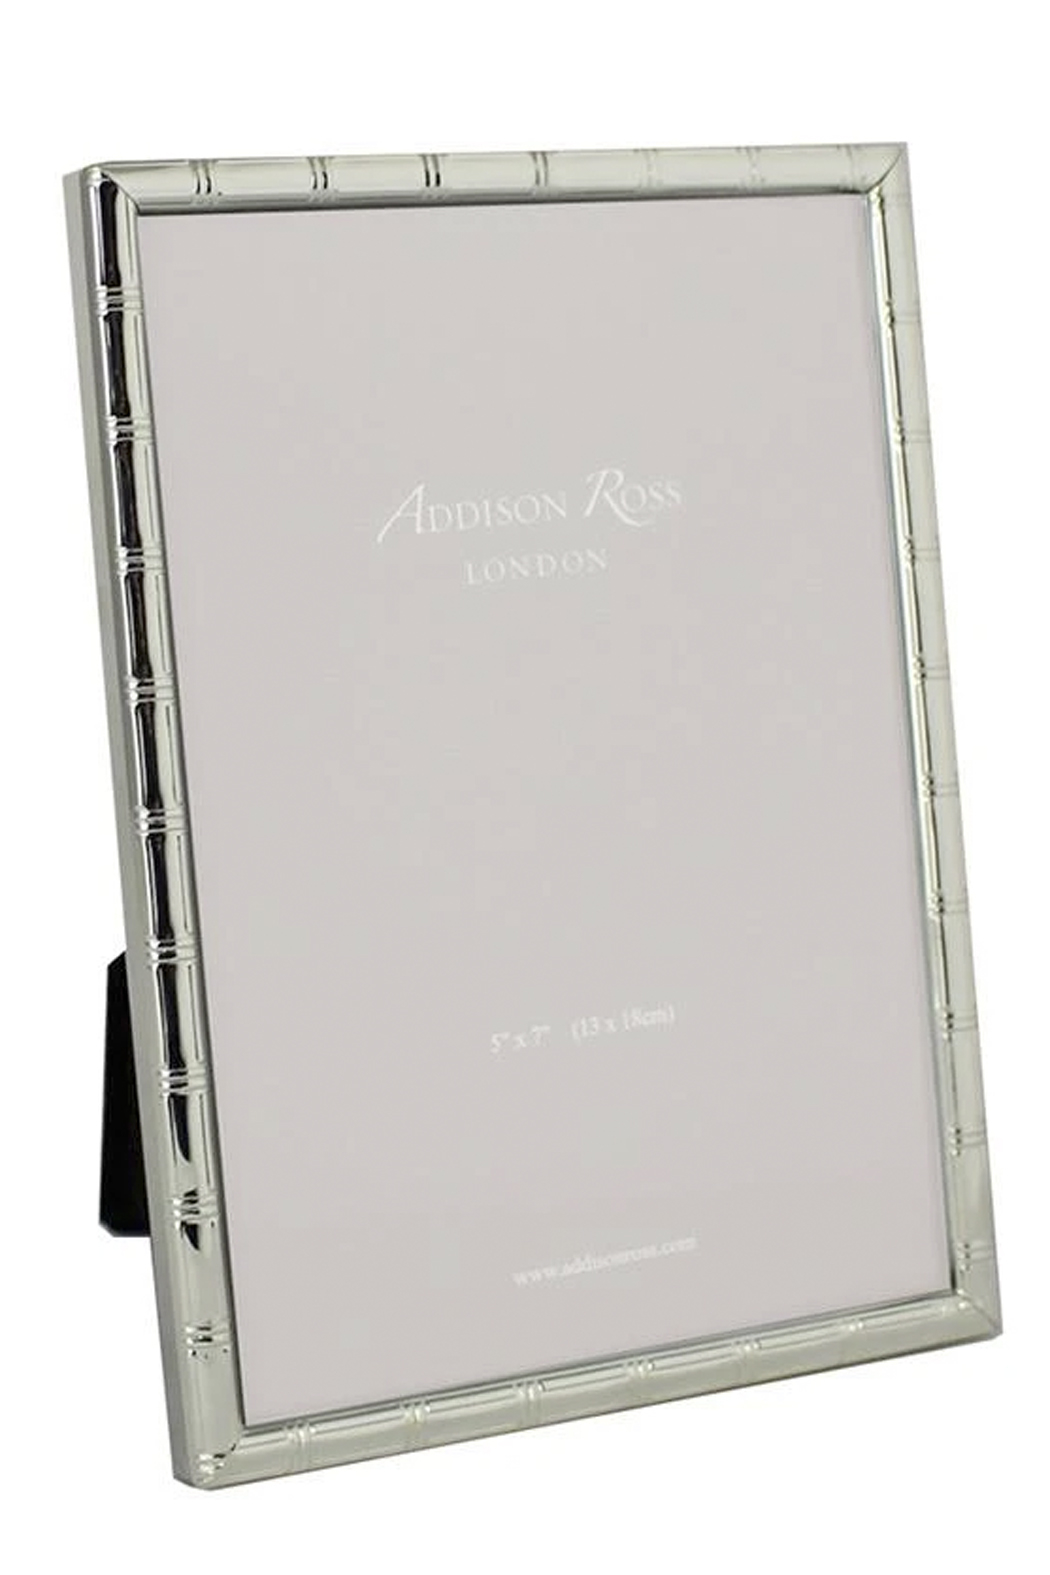 Addison Ross 4x6 Cane Silver Plated Frame - Main Image